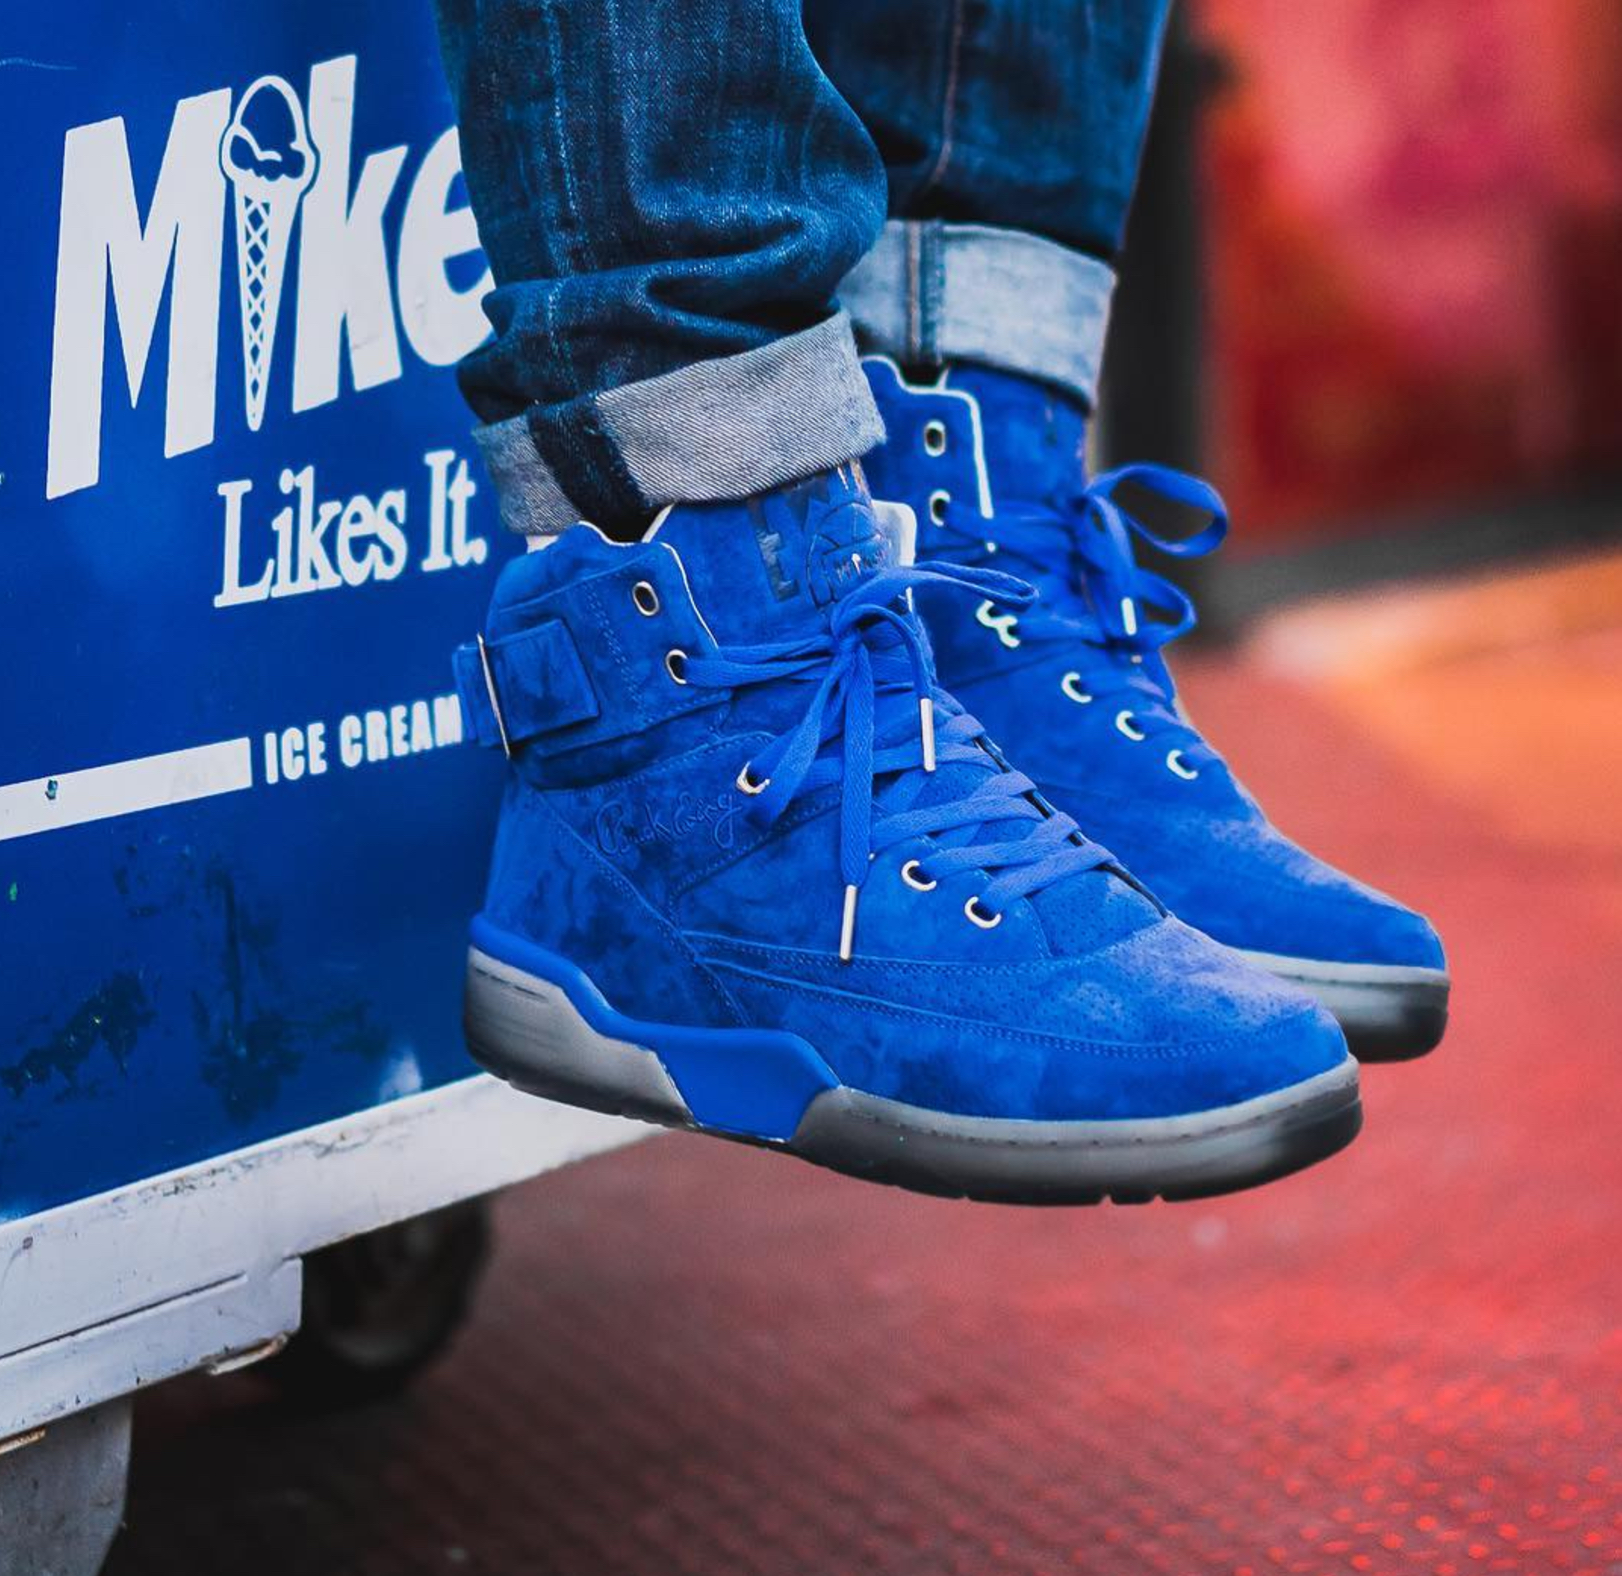 ewing 33 hi Mikey Likes It Ice Cream 2